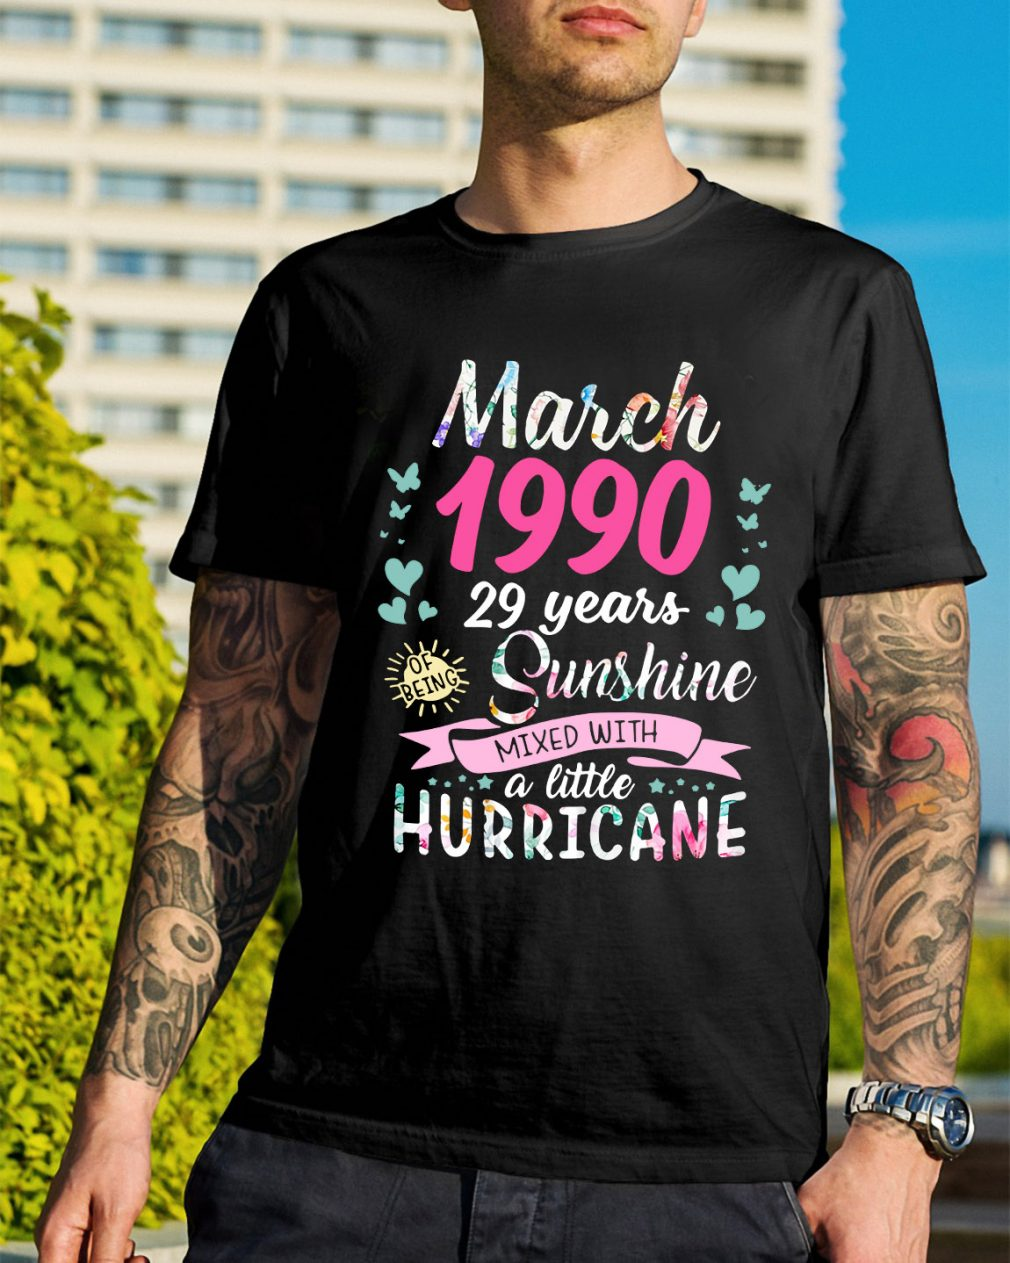 March 1990 29 years sunshine mixed with a little hurricane shirt